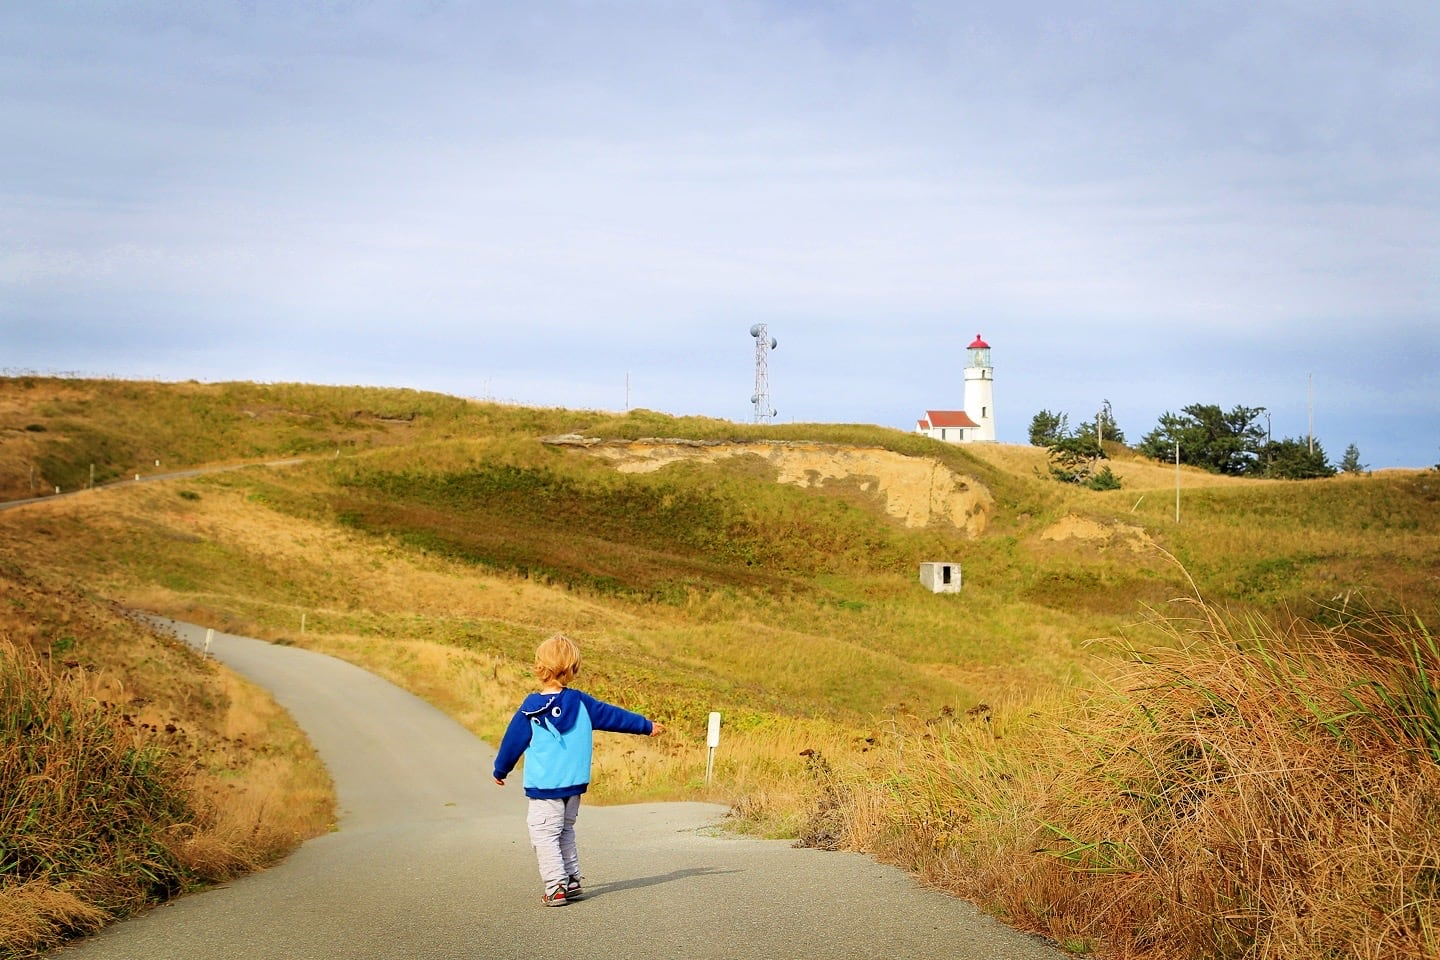 Cape Blanco Lighthouse small child walking